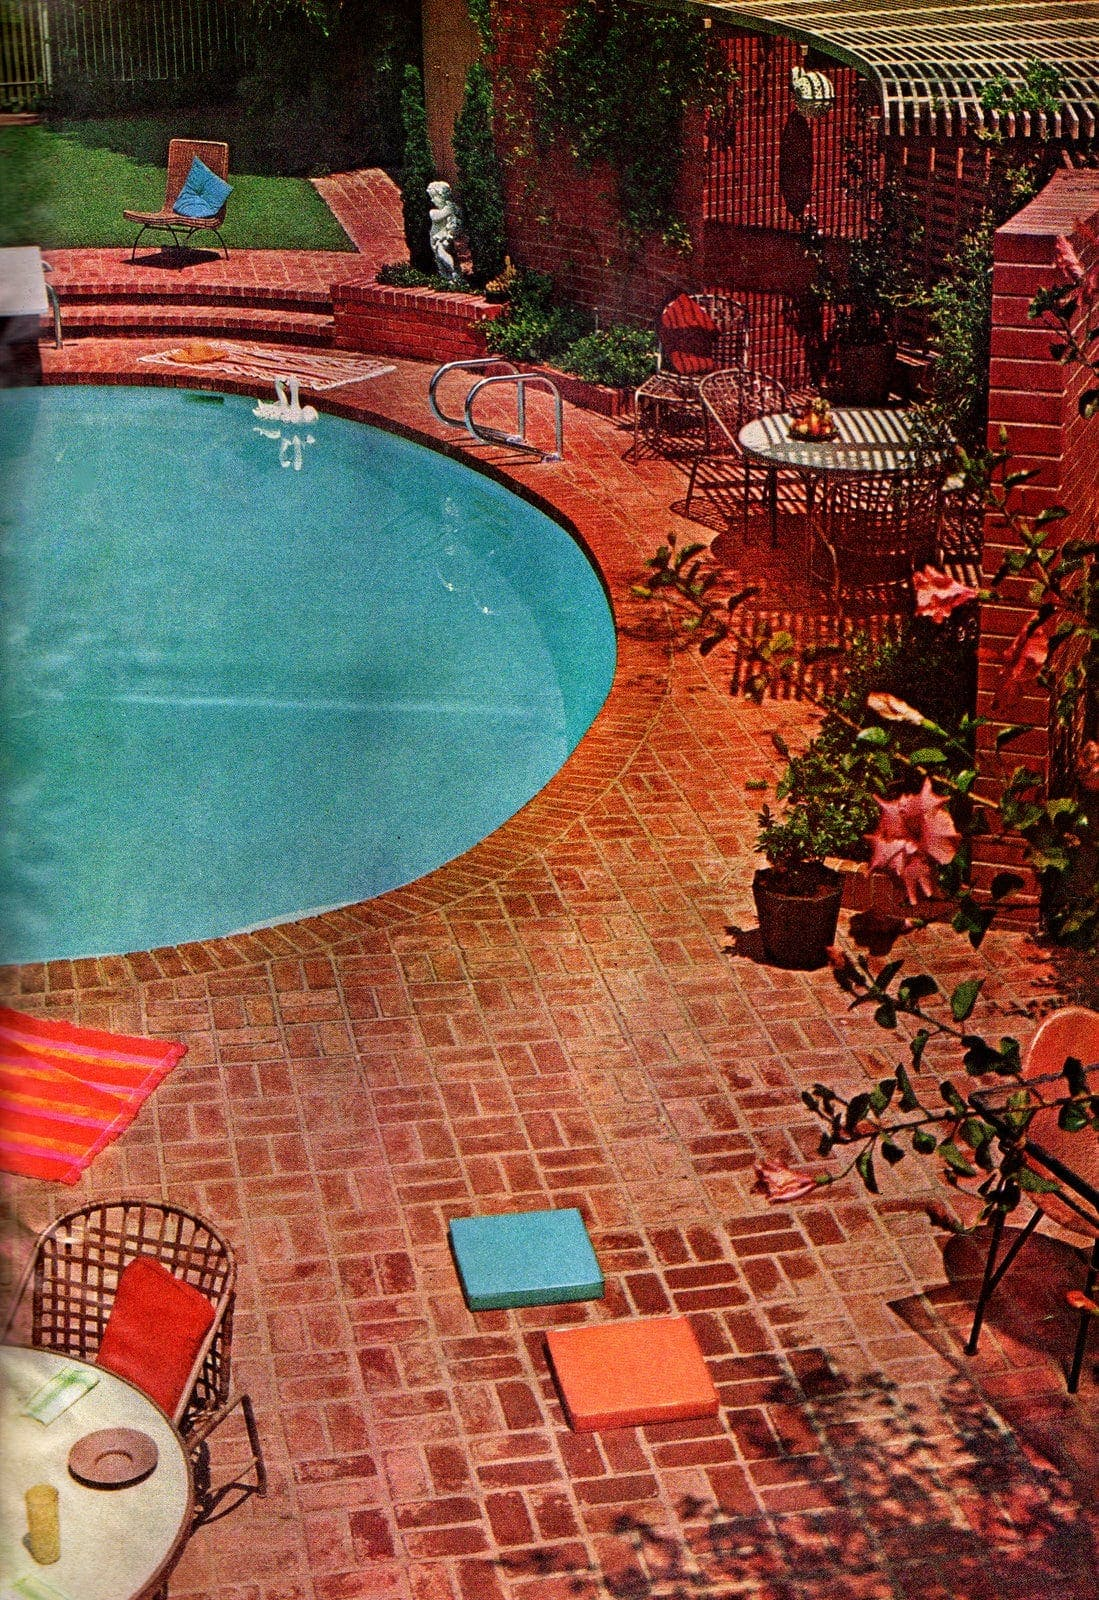 Pretty brick patio deck around a circular pool in the backyard - Vintage landscaping from 1966